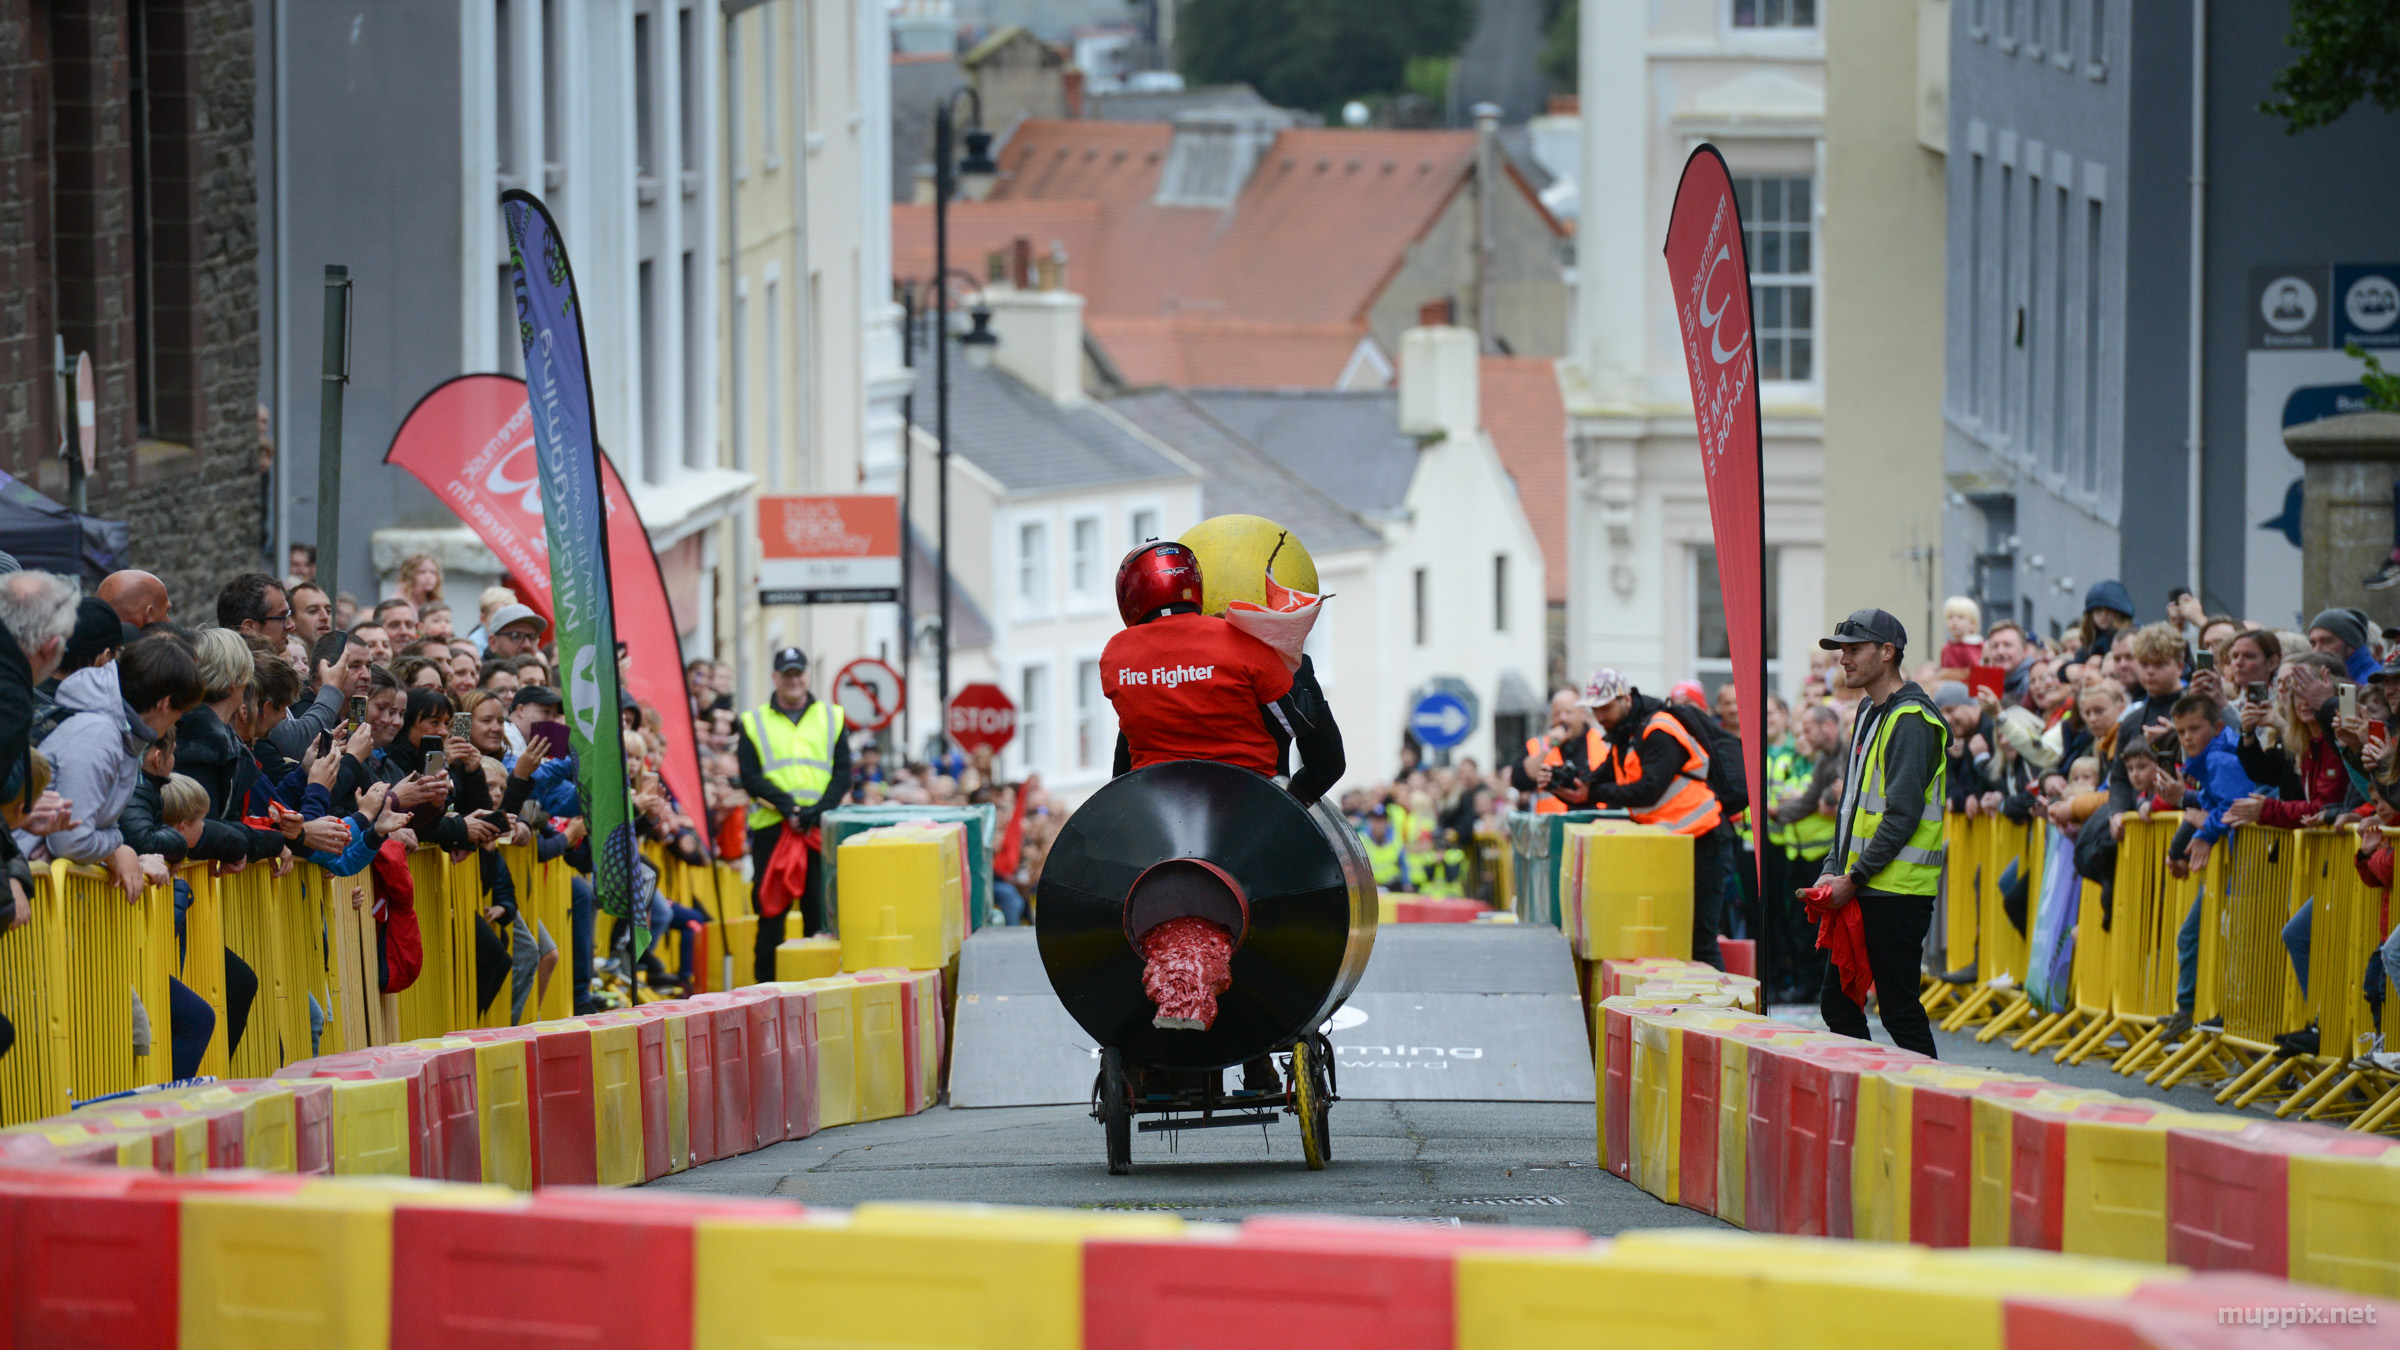 Back-end shot of a soapbox hurtling down a hilly street, crowds either side behind yellow barriers